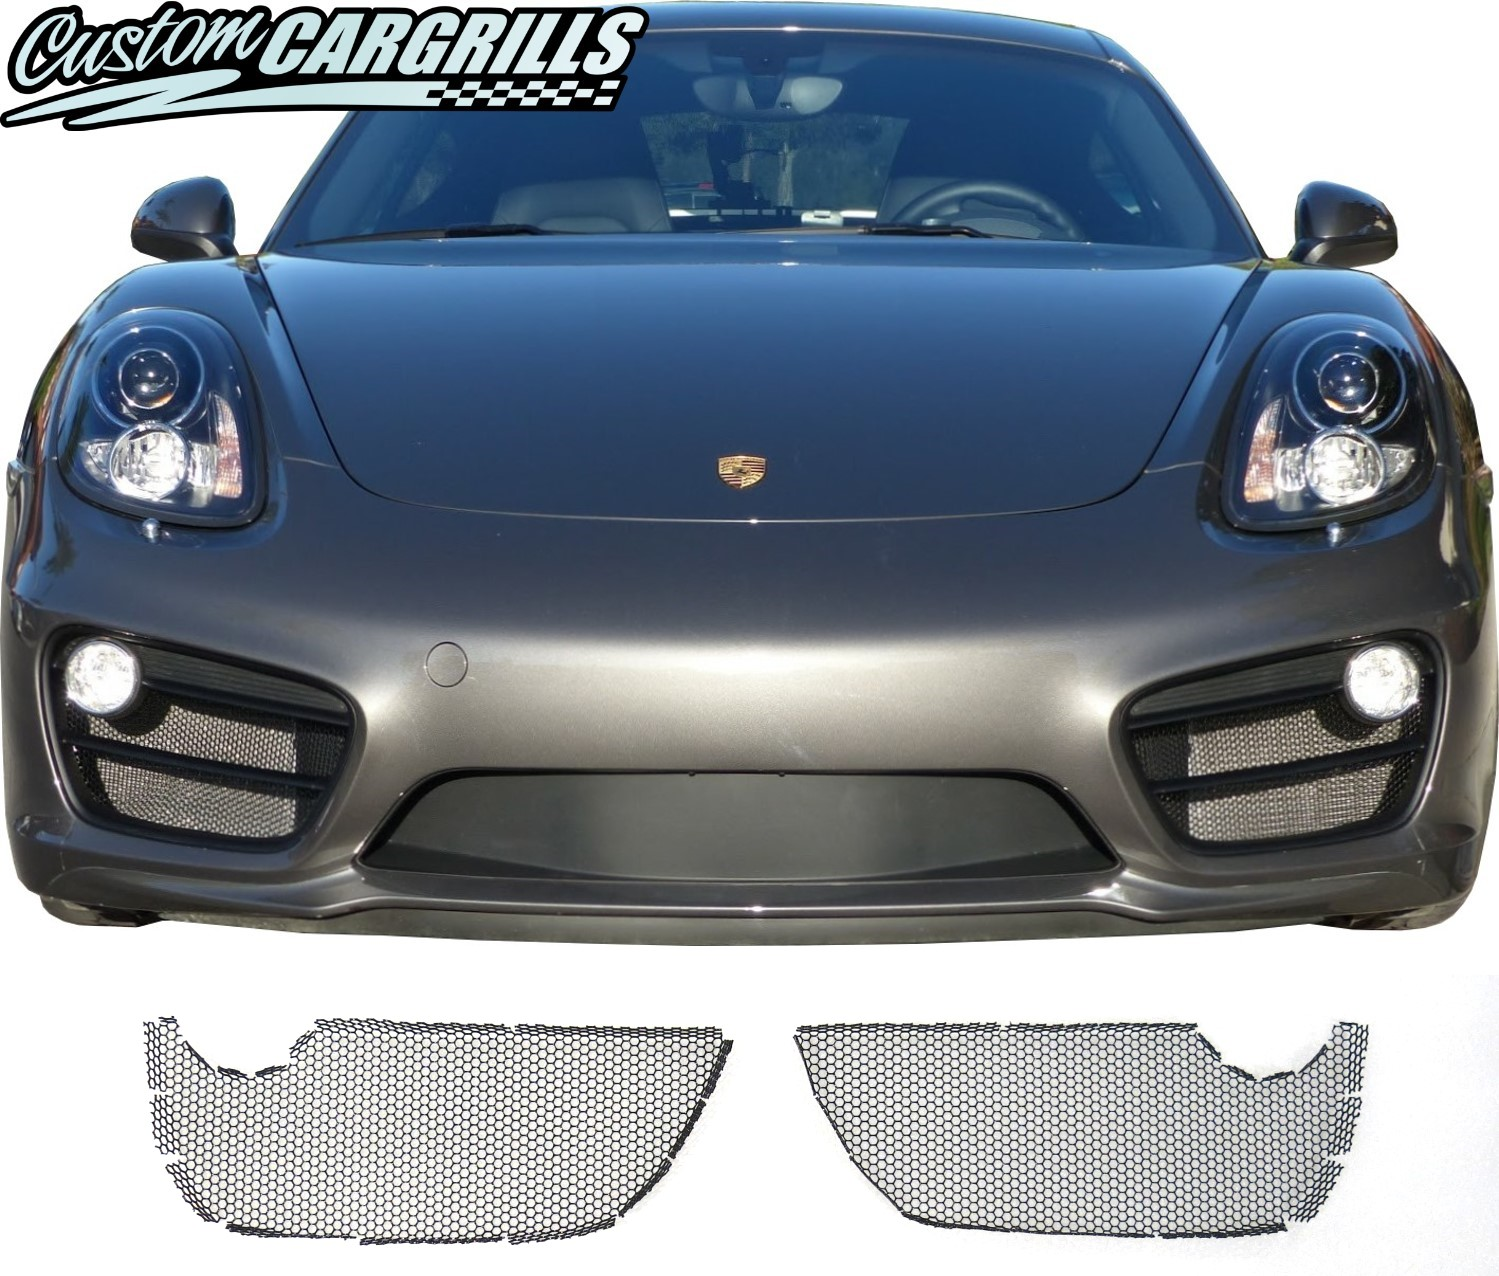 Custom Grill Mesh Kits for Porsche Vehicles by